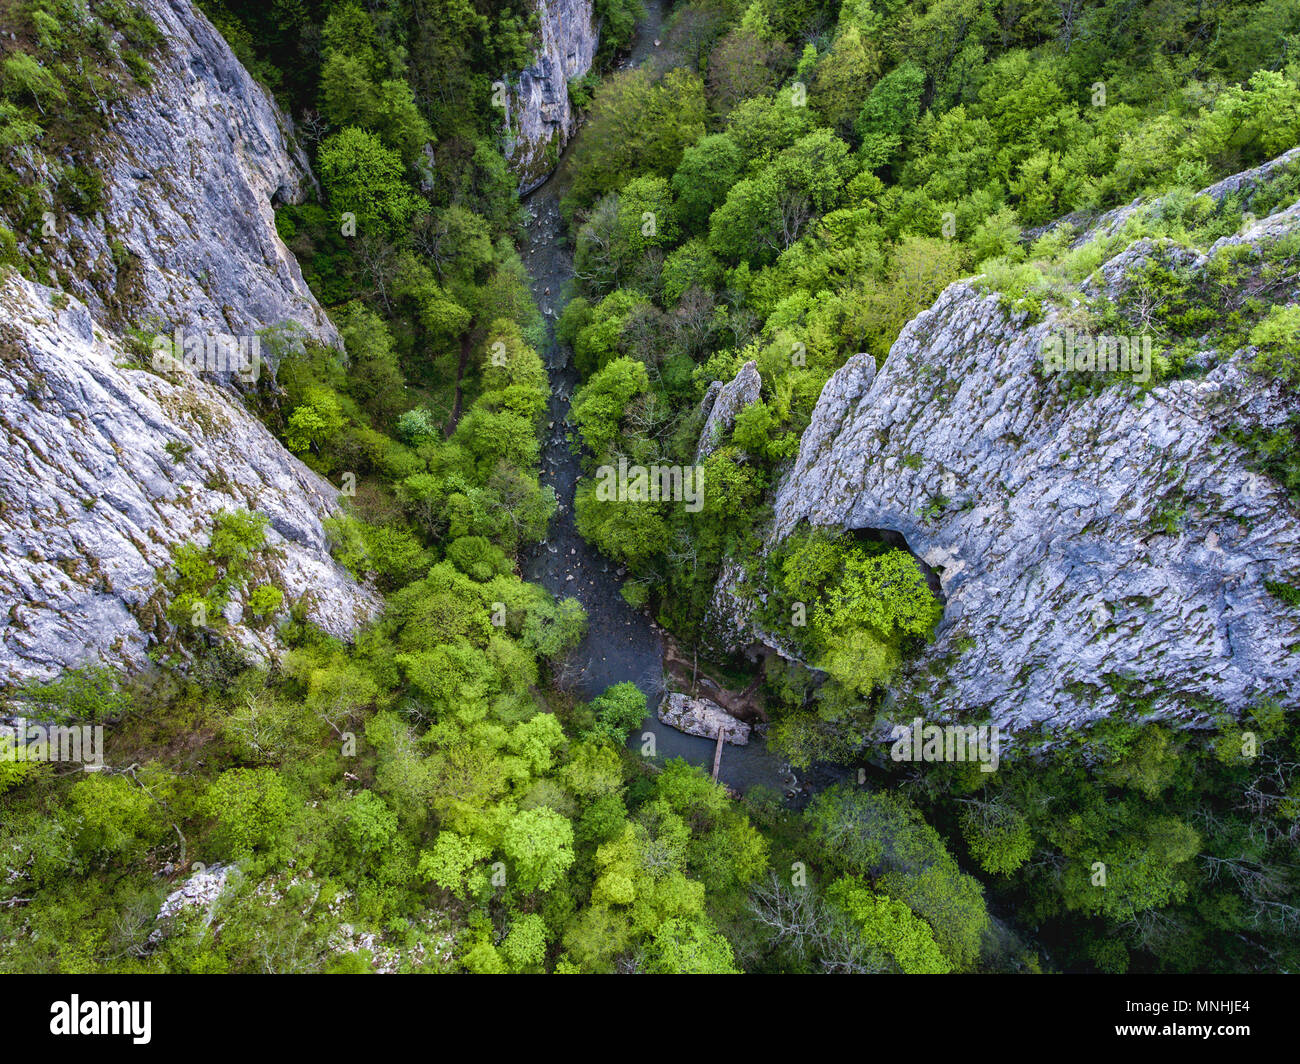 Varghisului Gorges in Covasna and Harghita county, Transylvania, Romania. Entrance to the three caves visible. Aerial view from a drone. - Stock Image